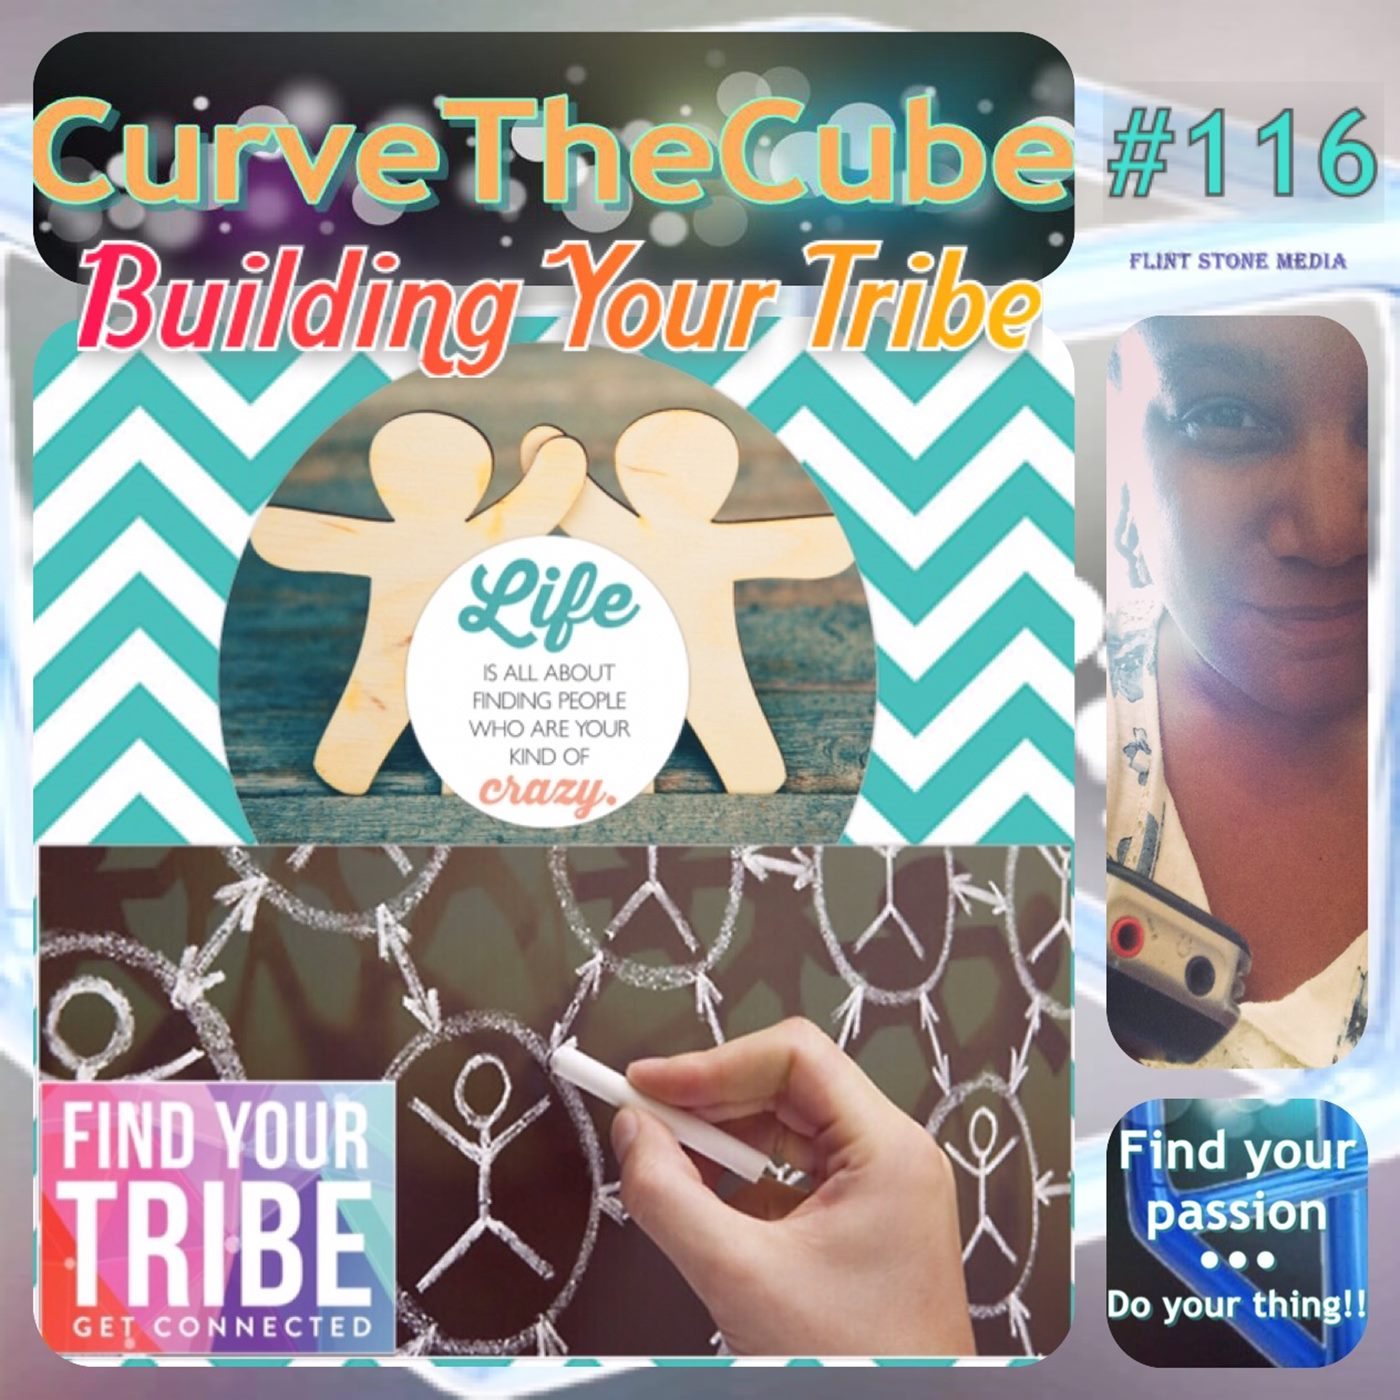 Curve the Cube Podcast - Finding Your Tribe